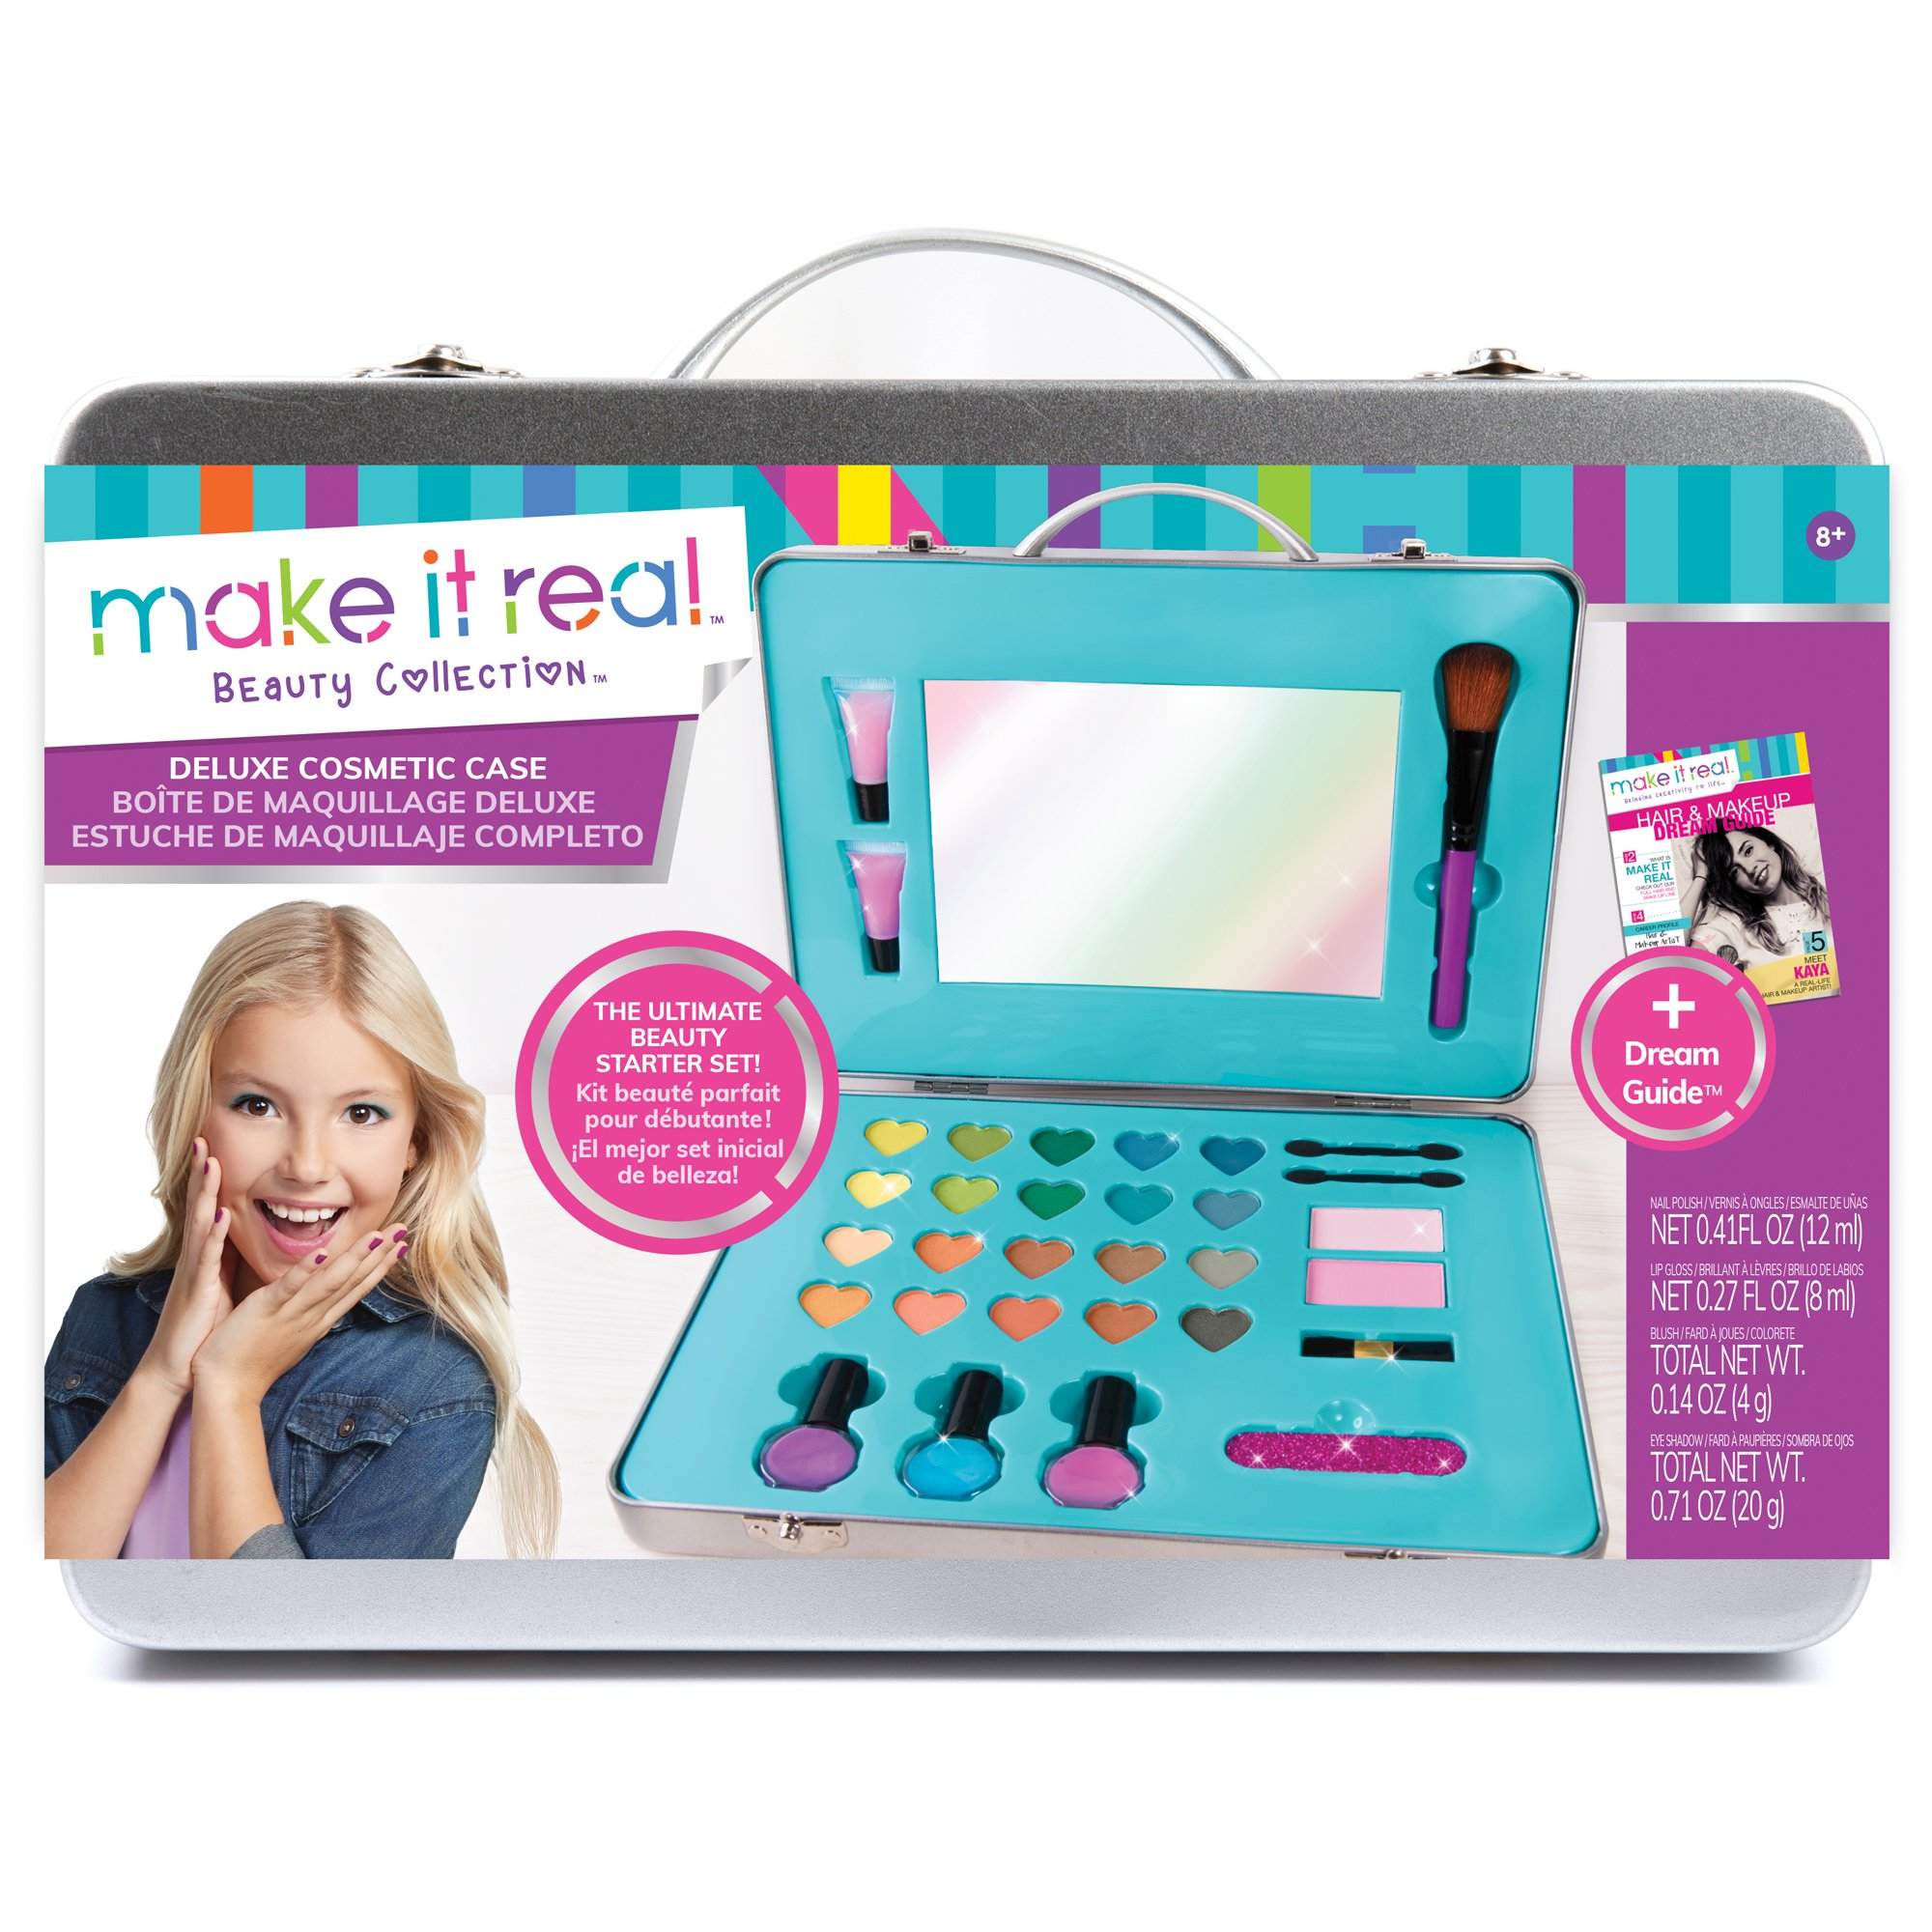 Make It Real - Deluxe Cosmetic Case. Girls Makeup Kit is a Perfect Starter Cosmetic Set for Kids and Tweens. Includes Case, Mirror, Eye Shadow, Blush, Brushes, Lip Gloss, Nail Polish and More